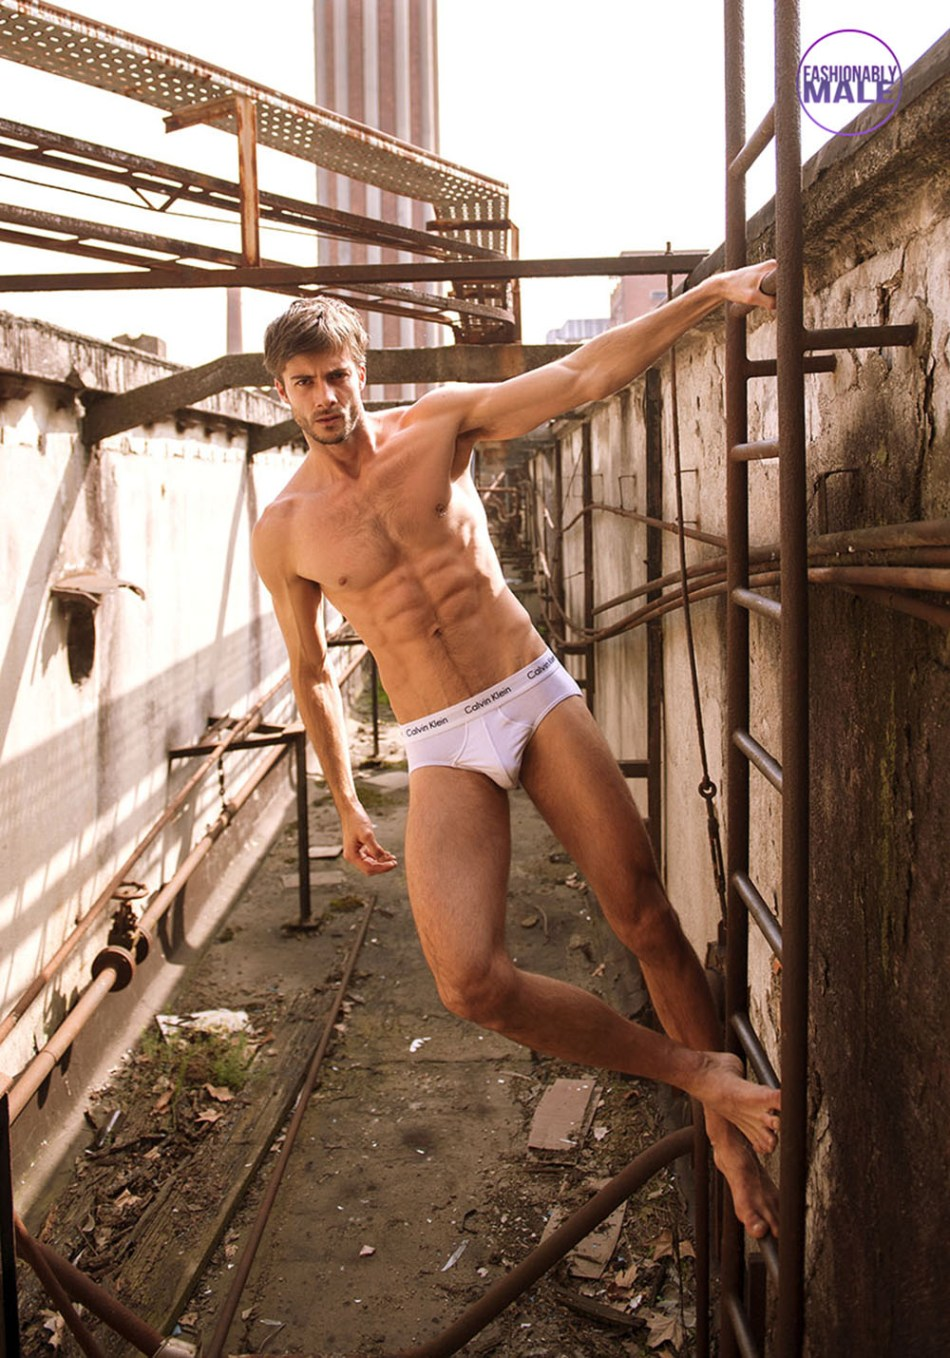 Gilberto Fritsch by Daniel Rodrigues for Fashionably Male4